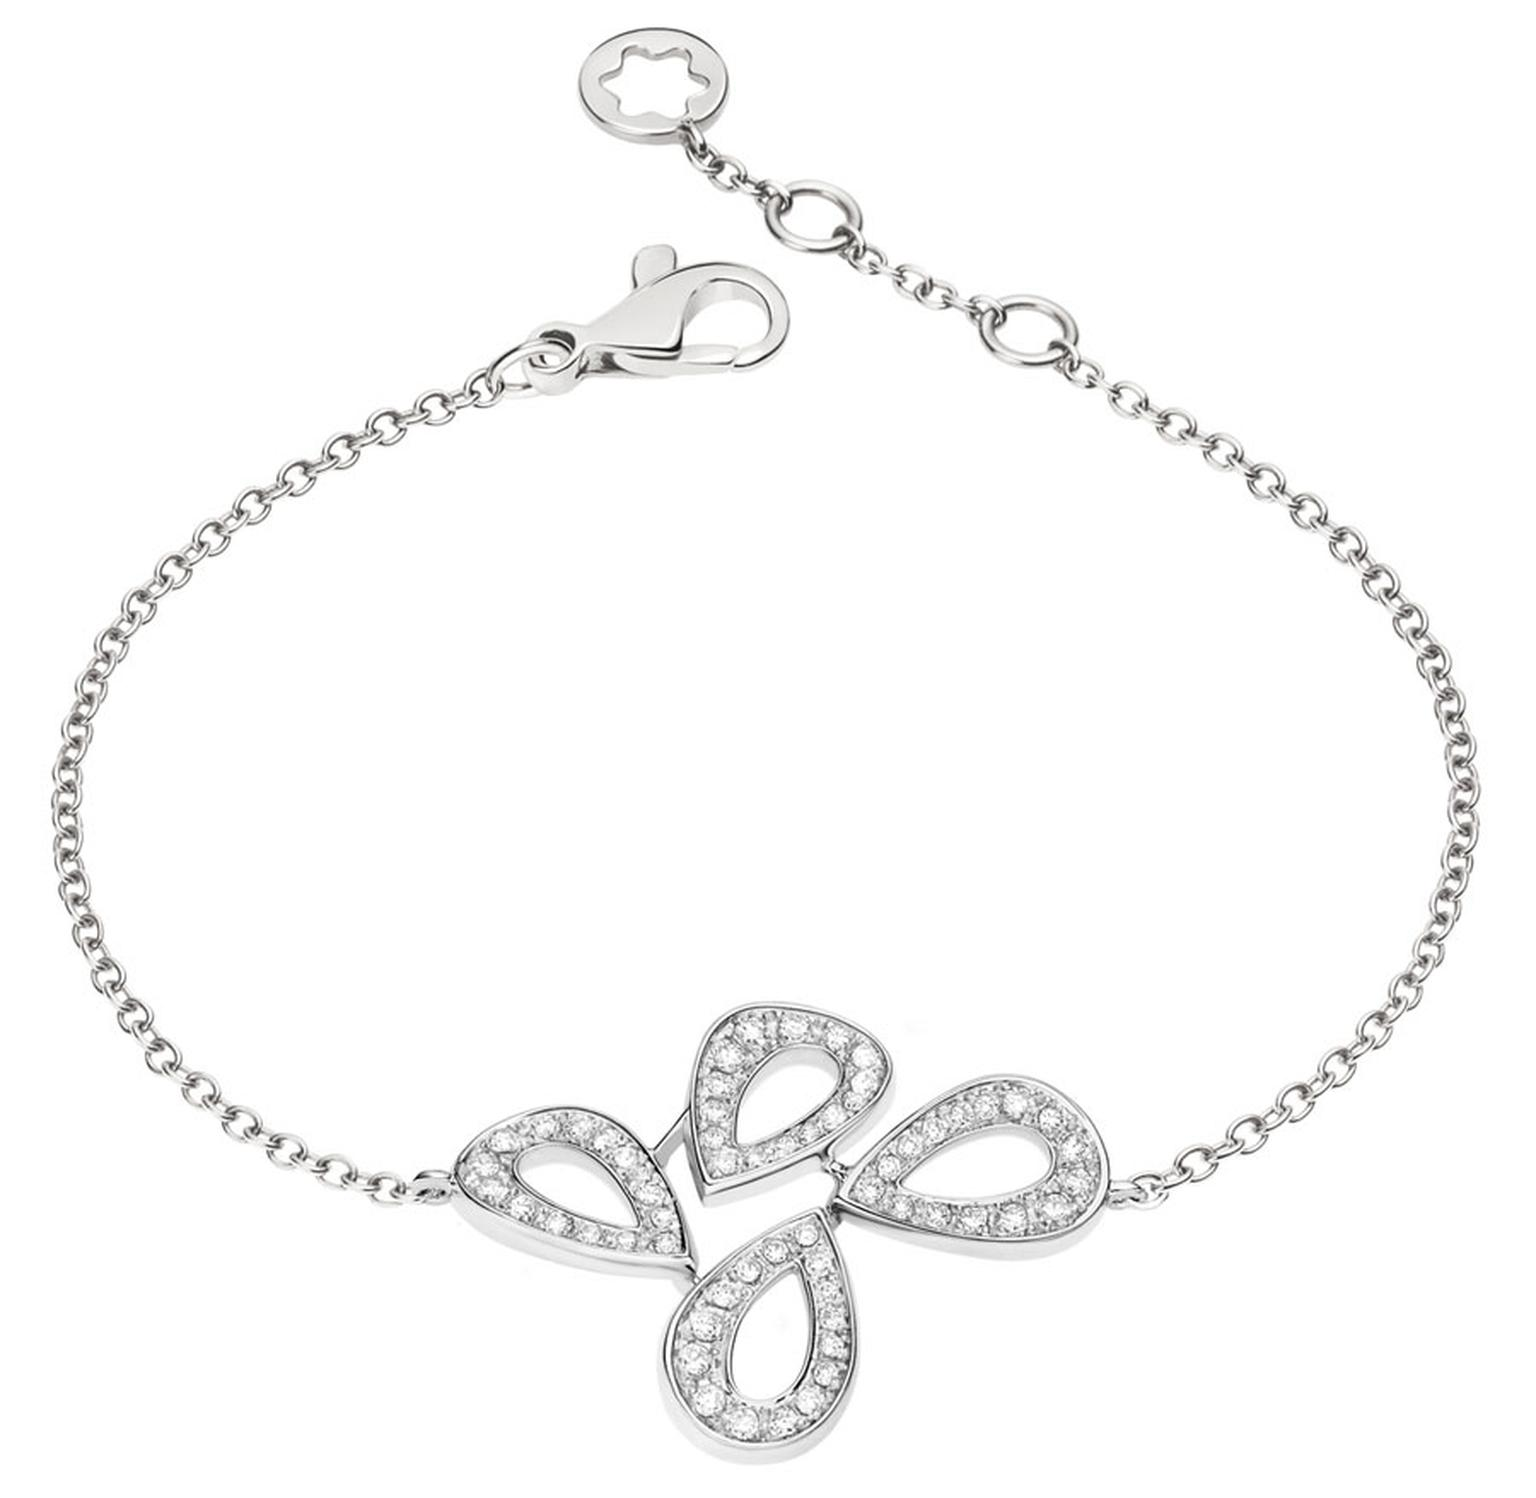 Montblanc_Collection_Princesse_Grace_de_Monaco_Petales_de_Rose_motif_bracelet_107967